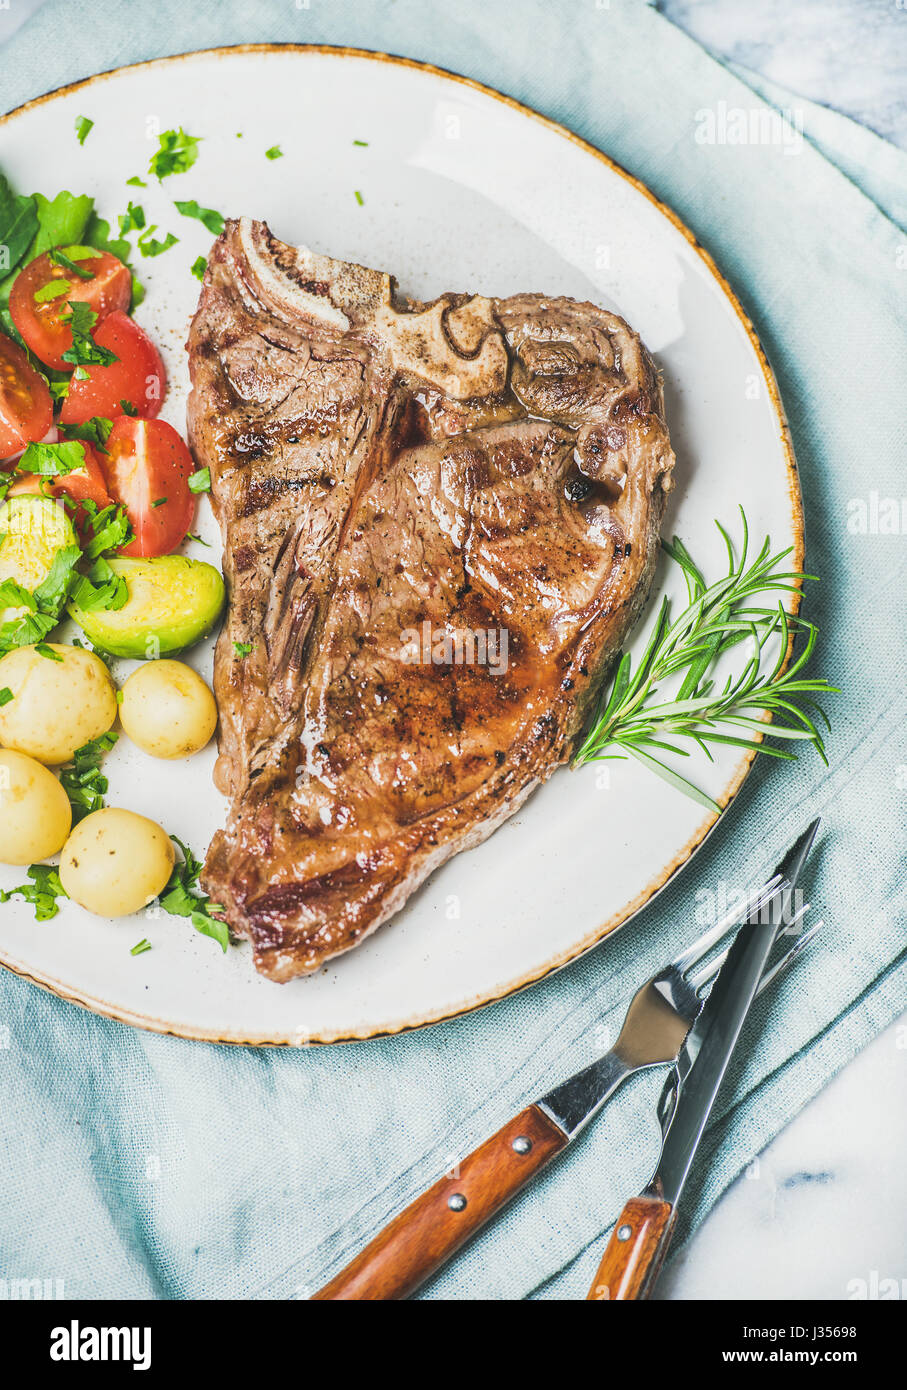 Cena a base di carne la piastra con manzo cotto tbone steak Immagini Stock